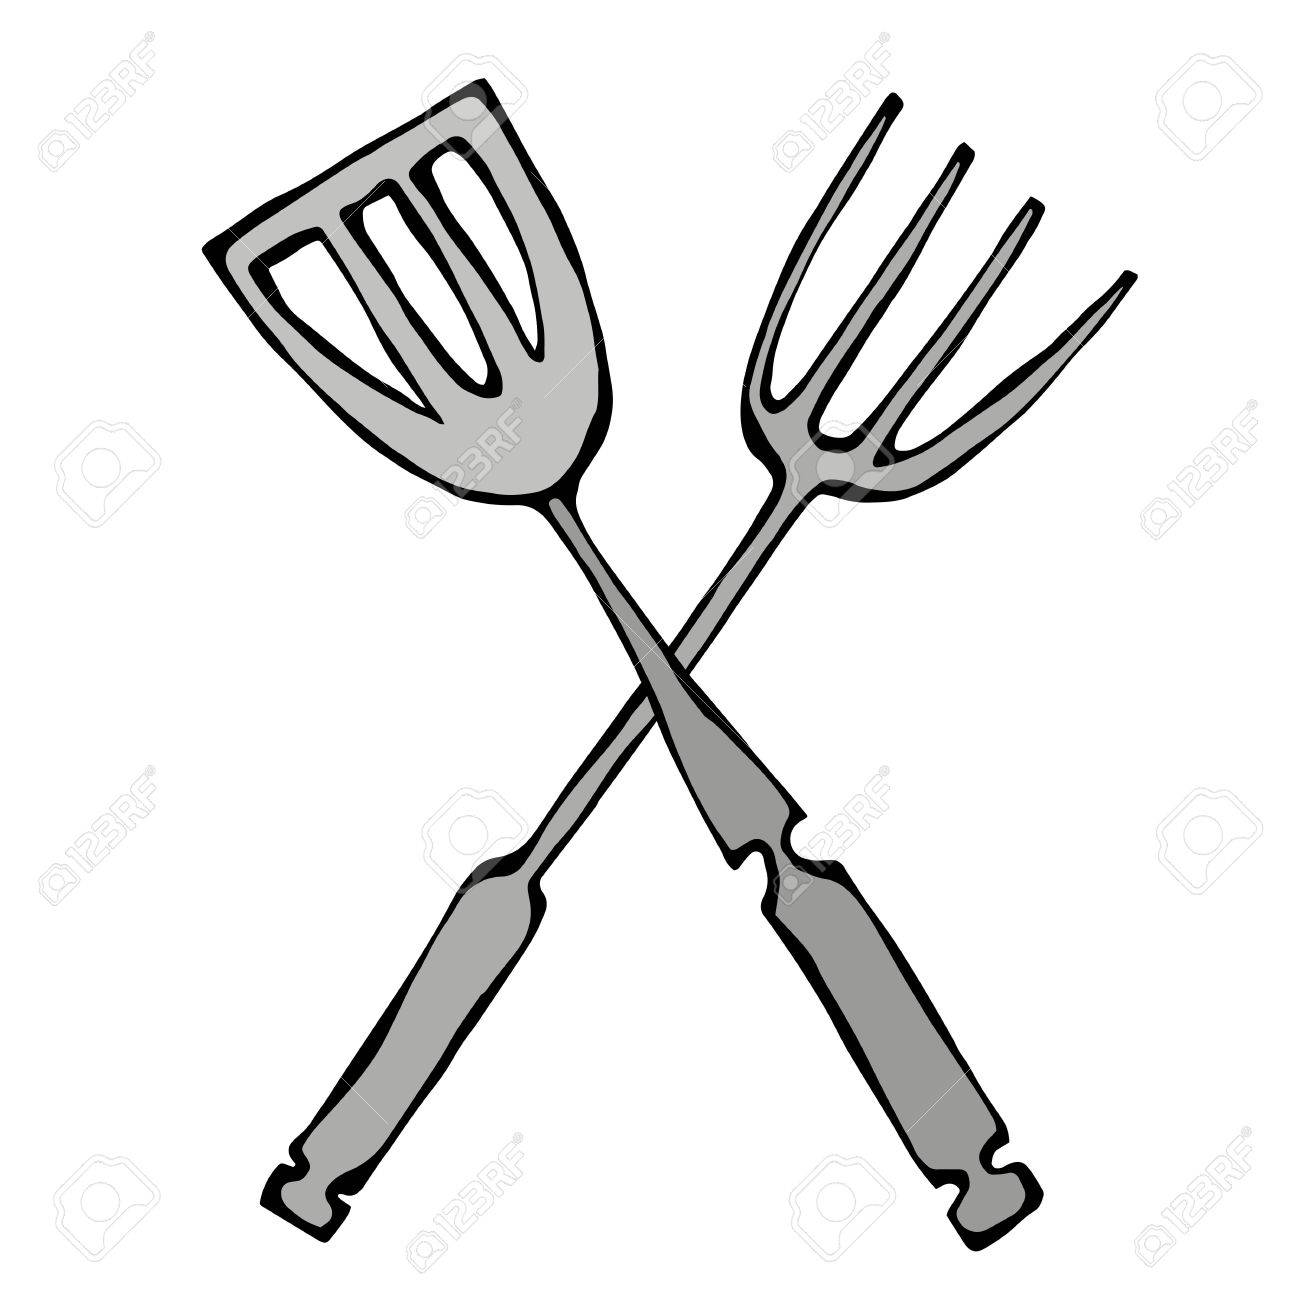 BBQ or Grill Tools Icon. Crossed Barbecue Fork with Spatula.